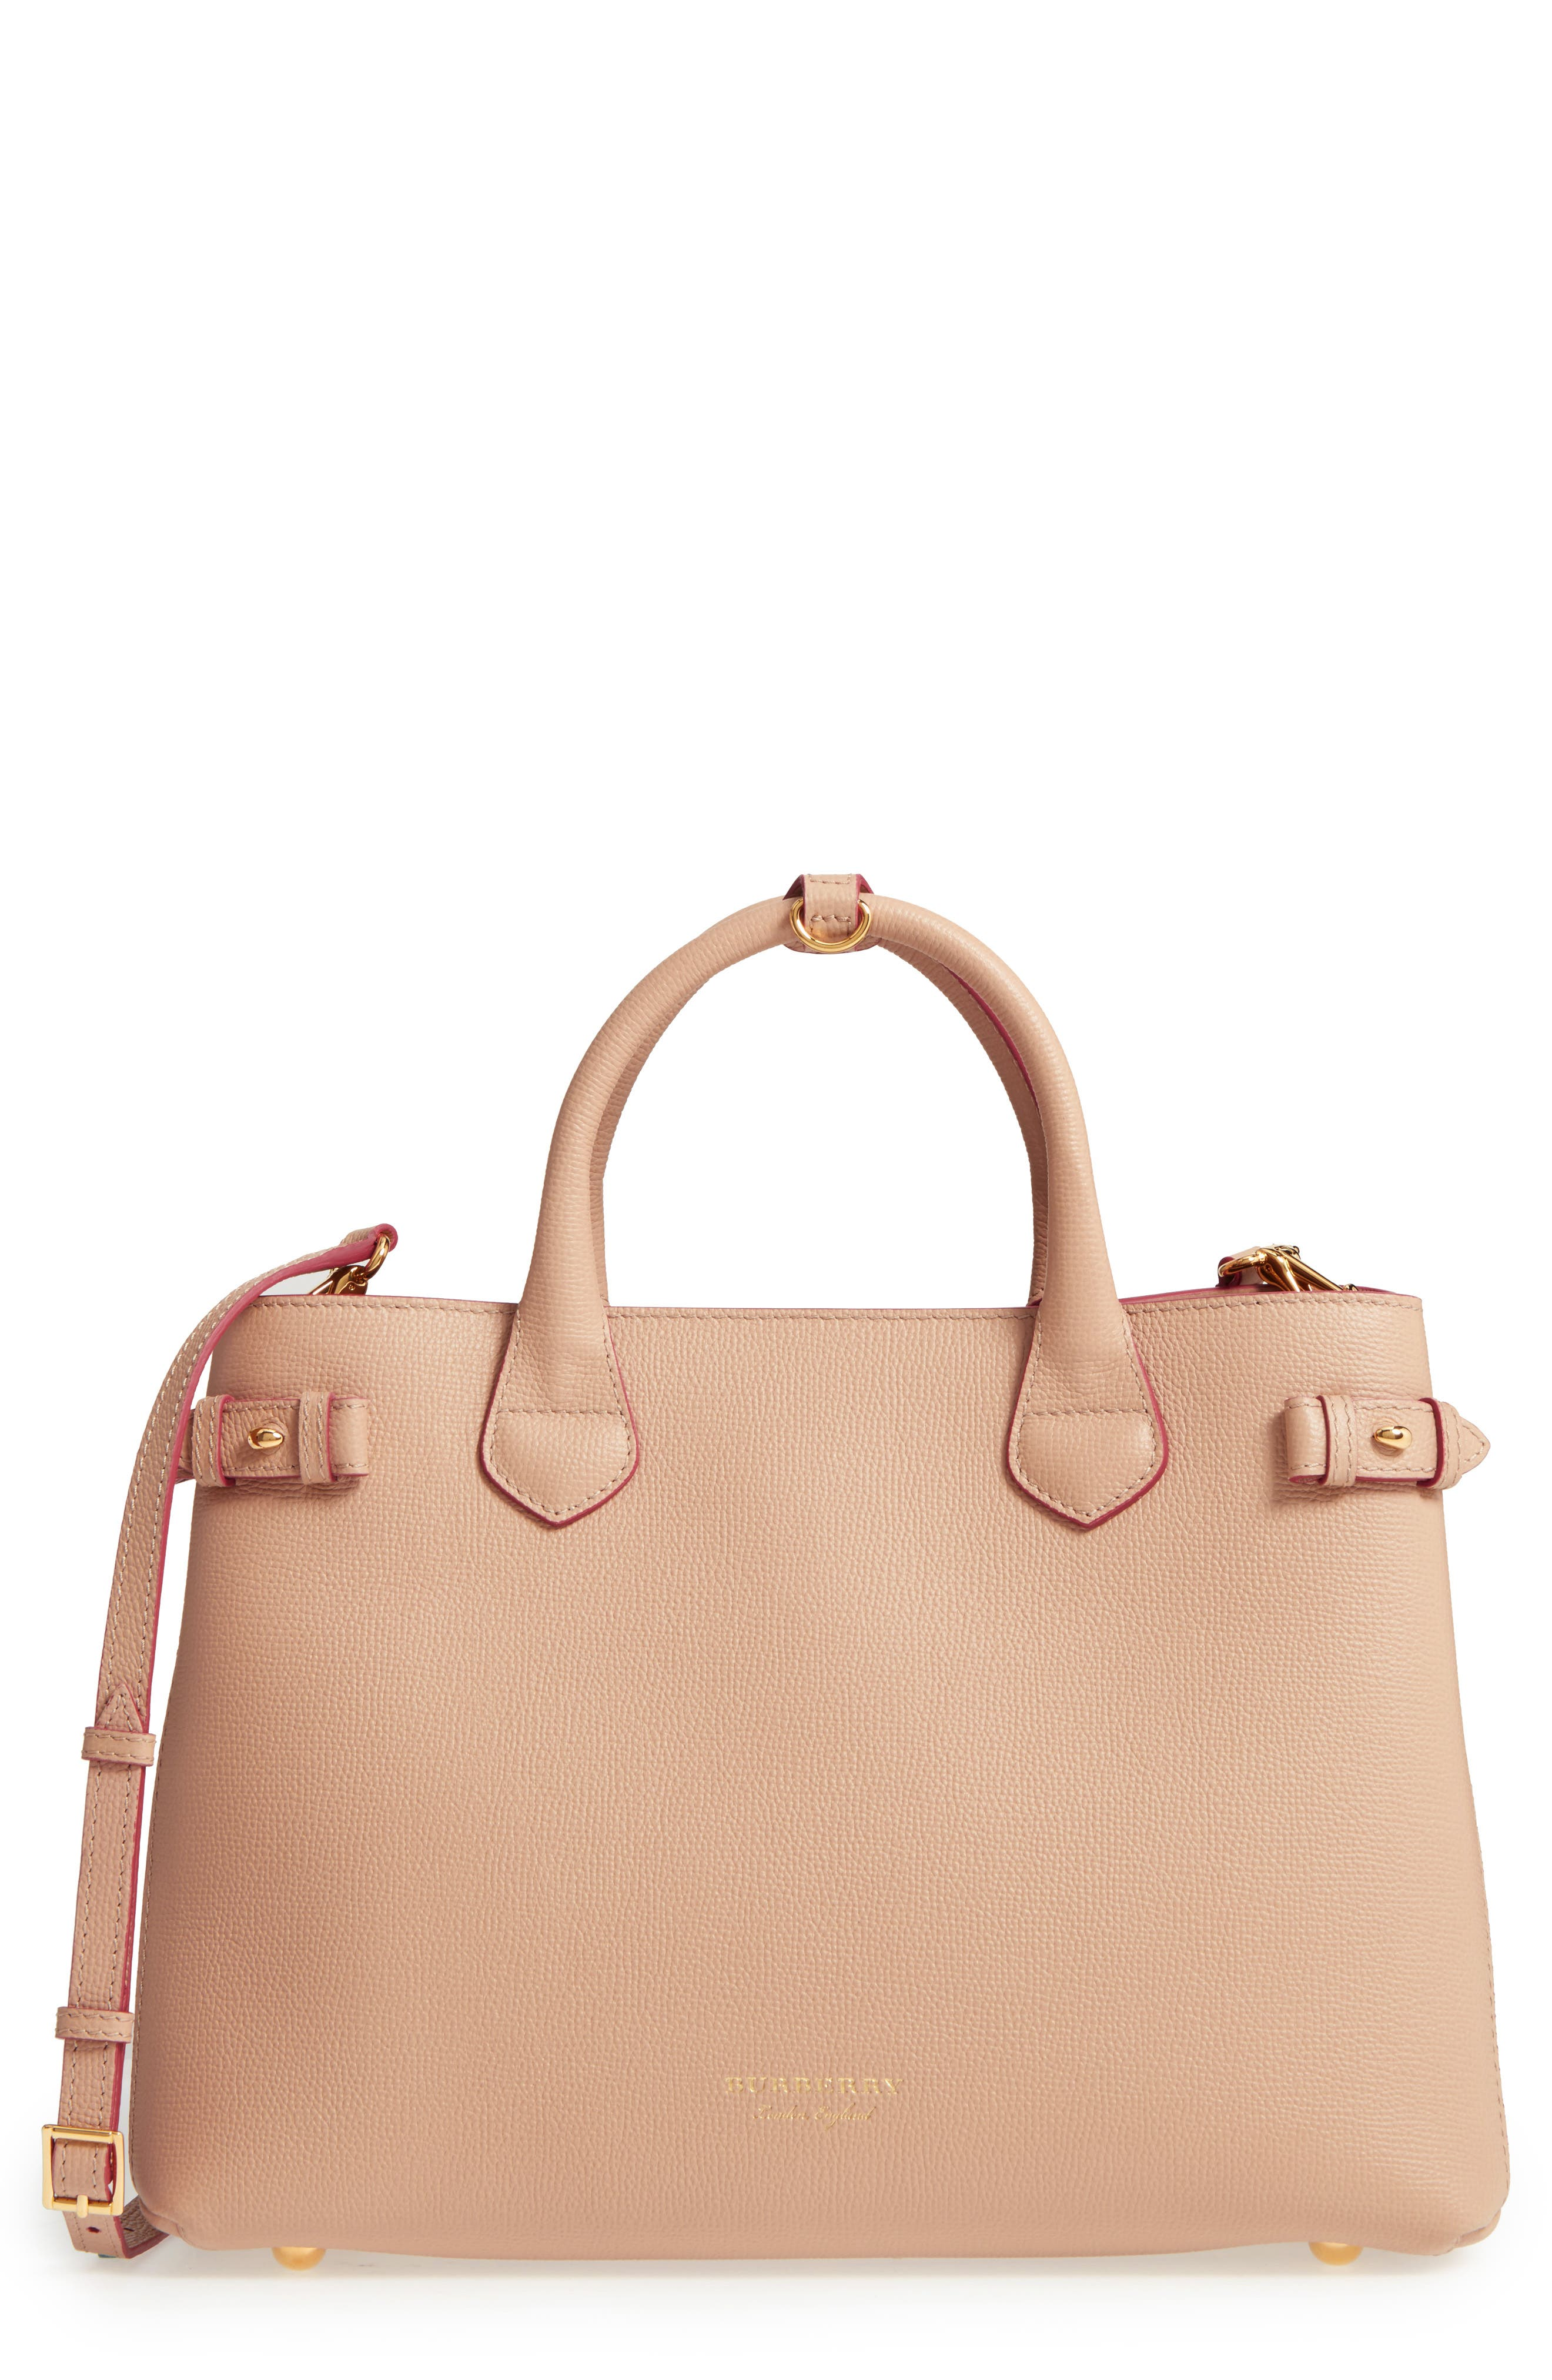 Alternate Image 1 Selected - Burberry Medium Banner Check Leather Tote